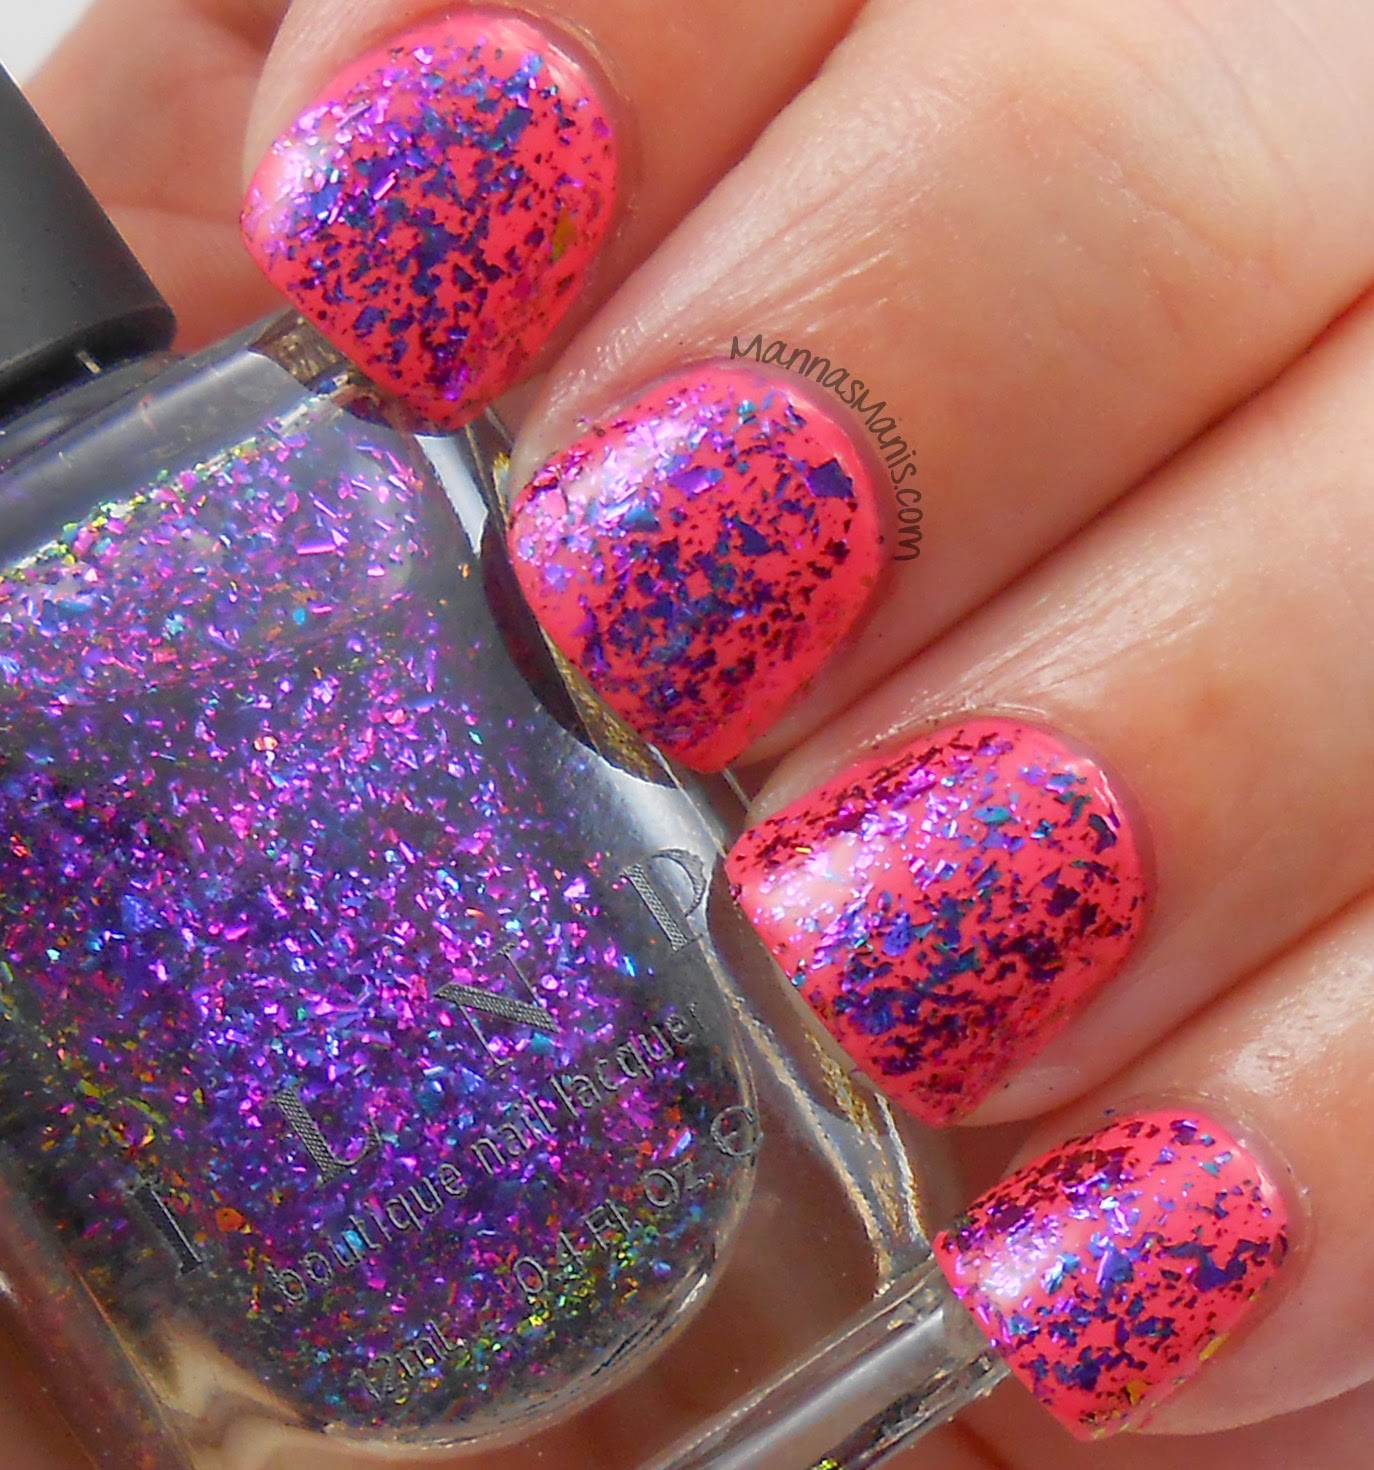 ILNP metropolis, a multicolored flakie nail polish